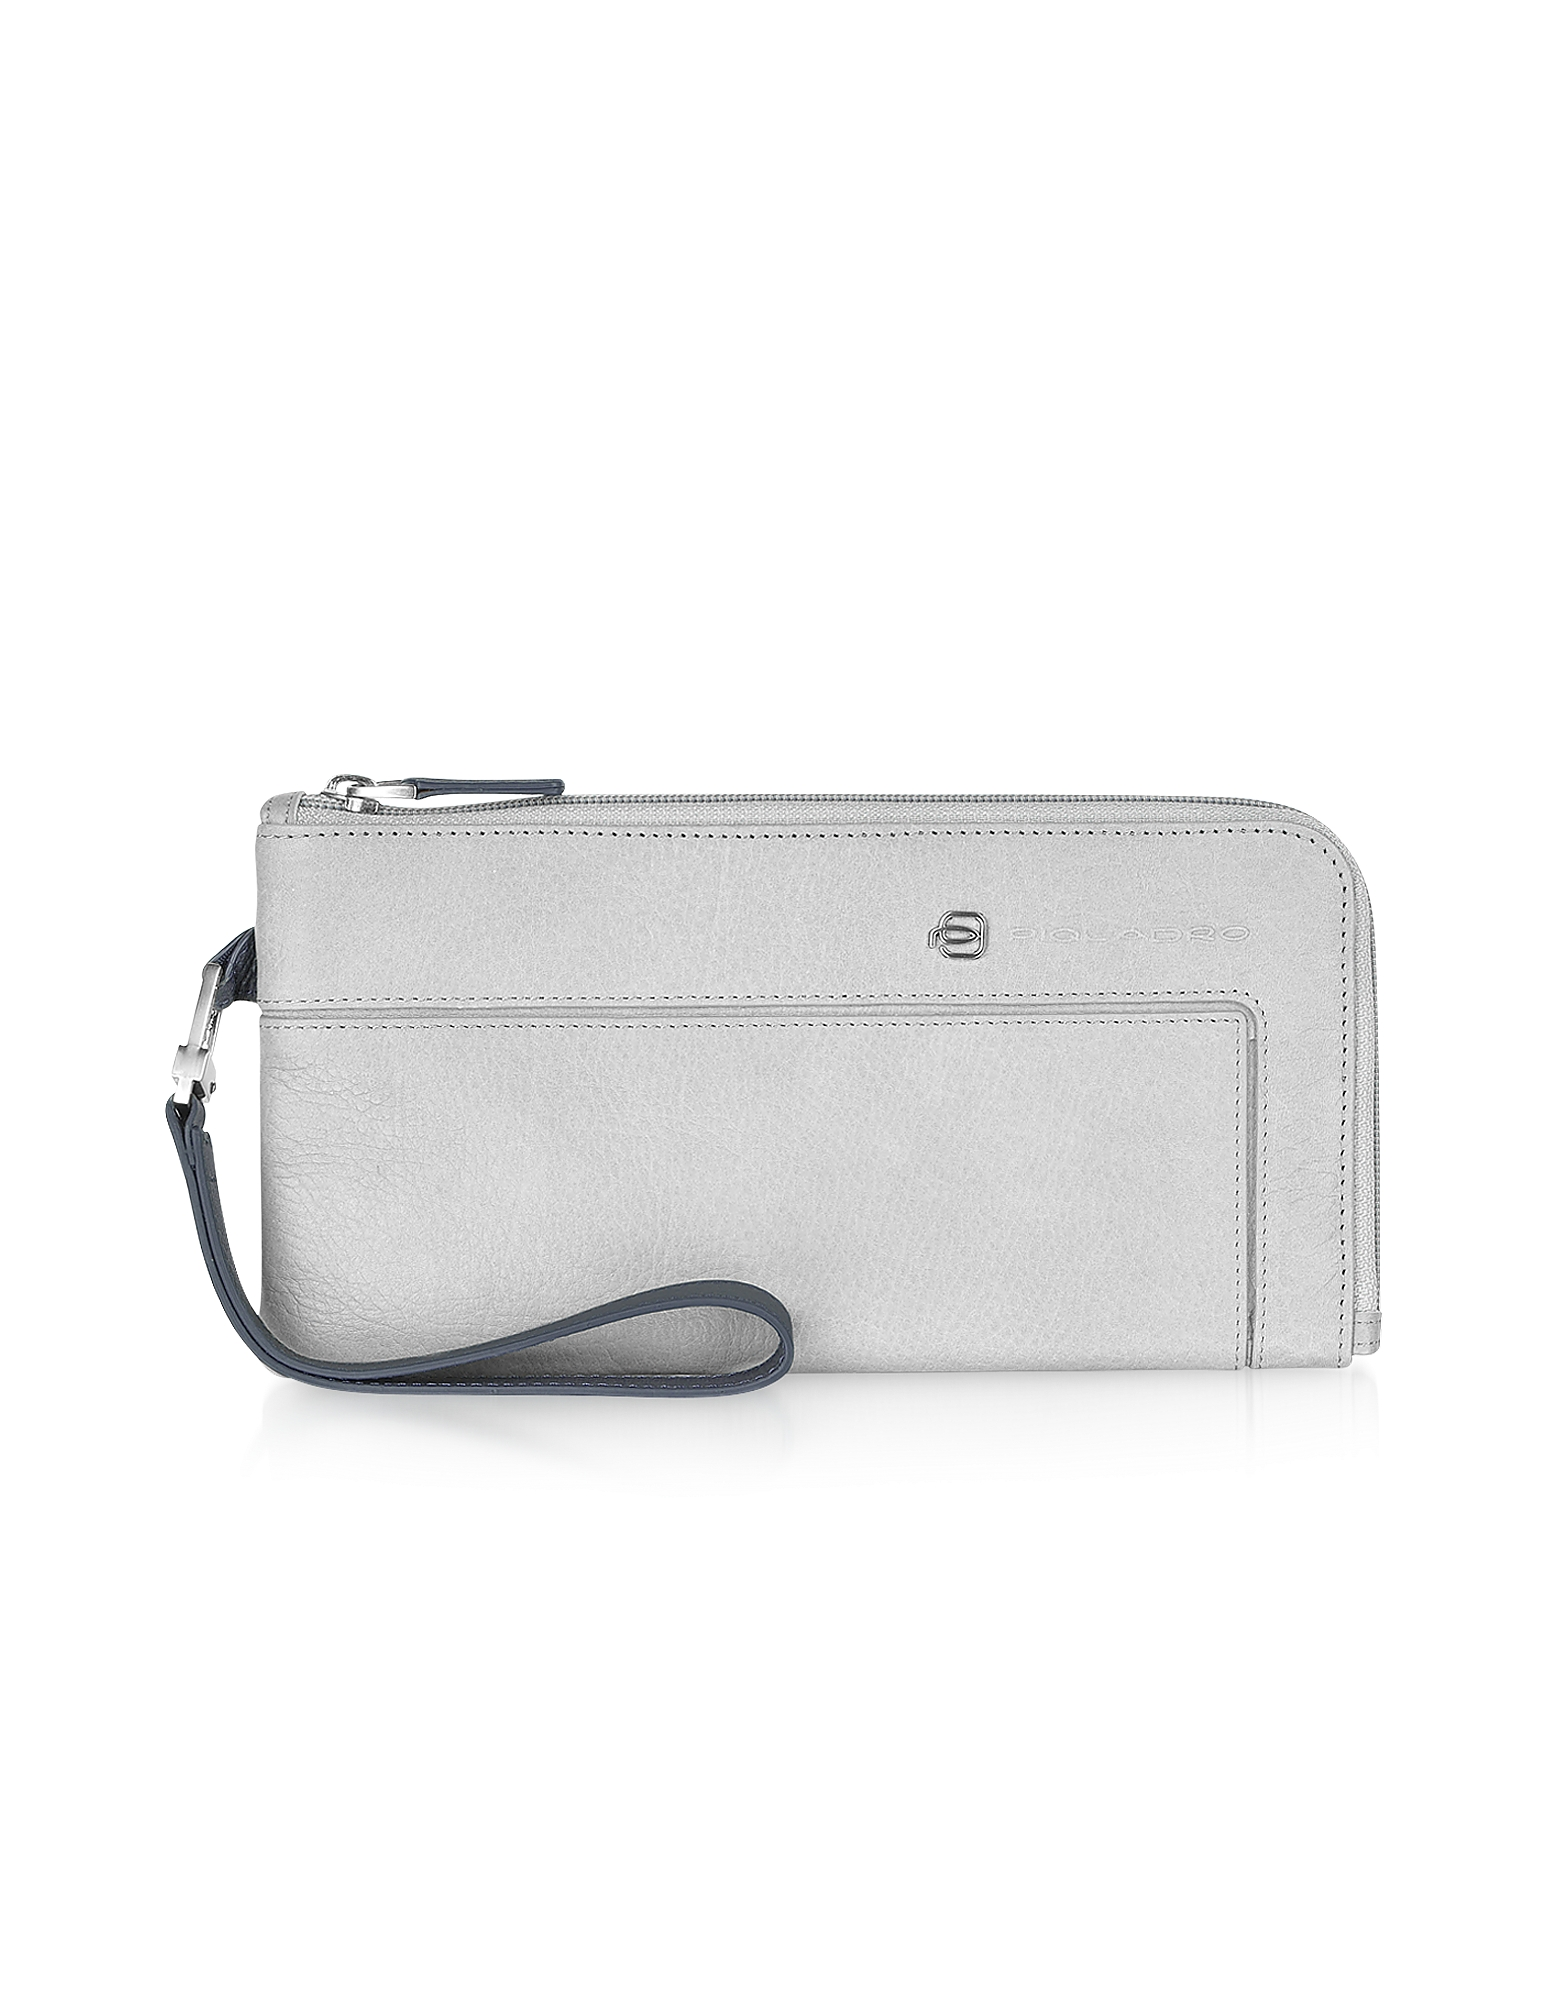 Piquadro Wallets, Vibe - Zip Around Leather Wallet Clutch